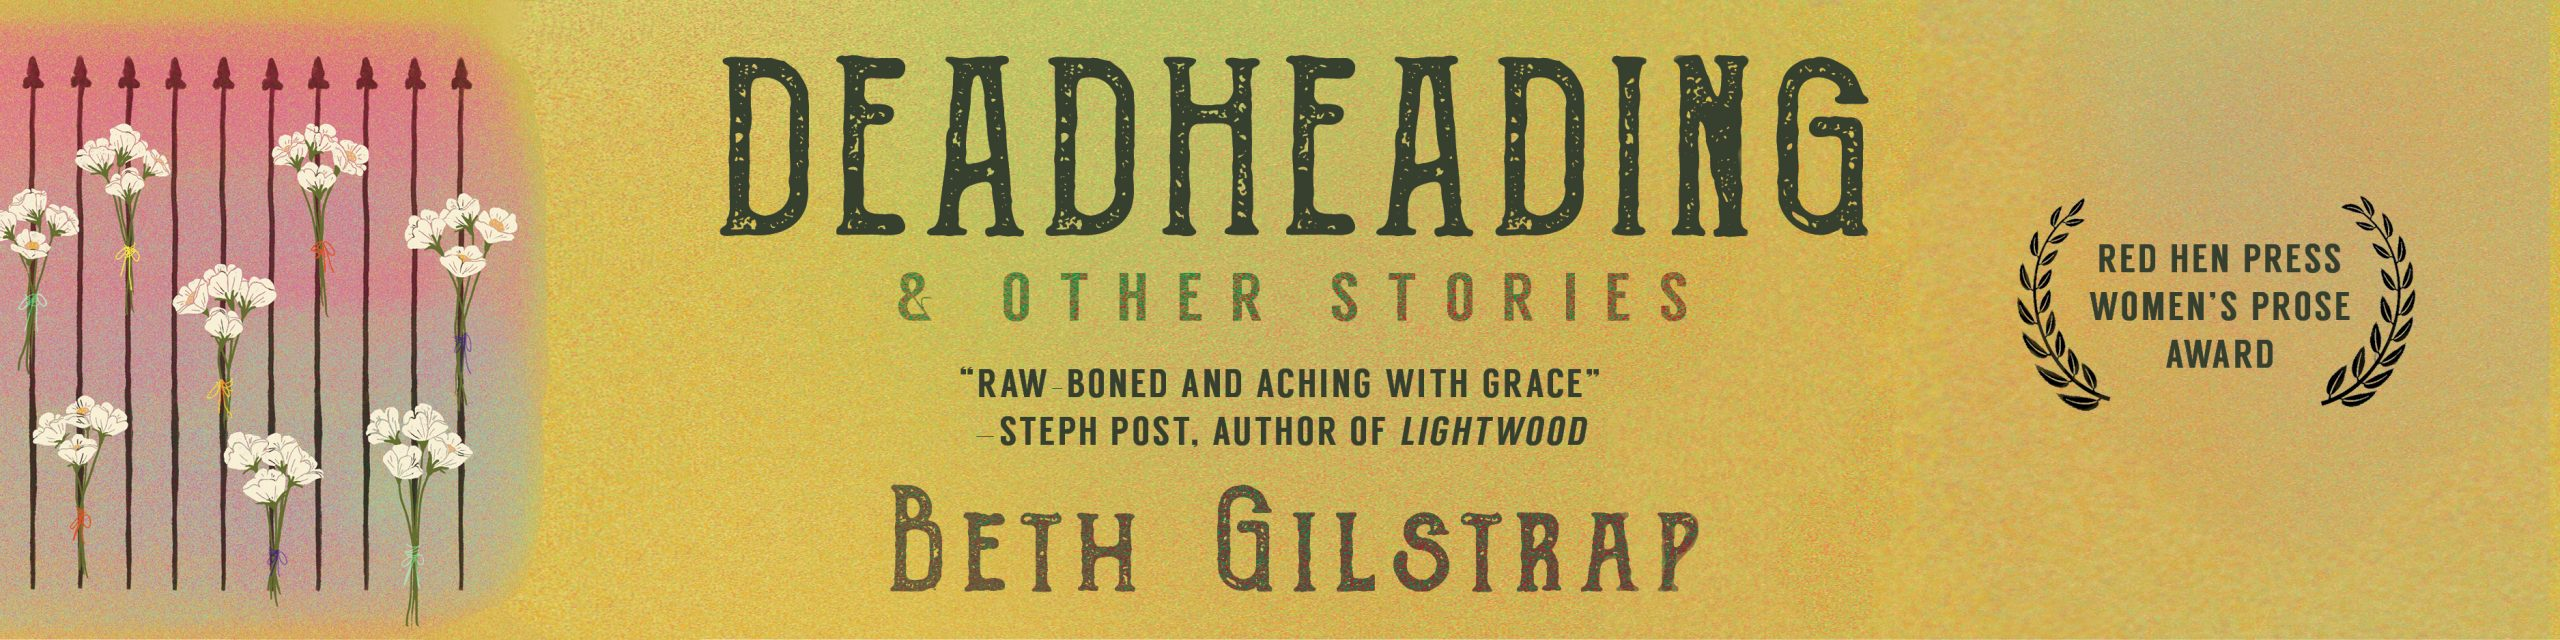 Promotional banner celebrating the release of Deadheading and Other Stories by Beth Gilstrap